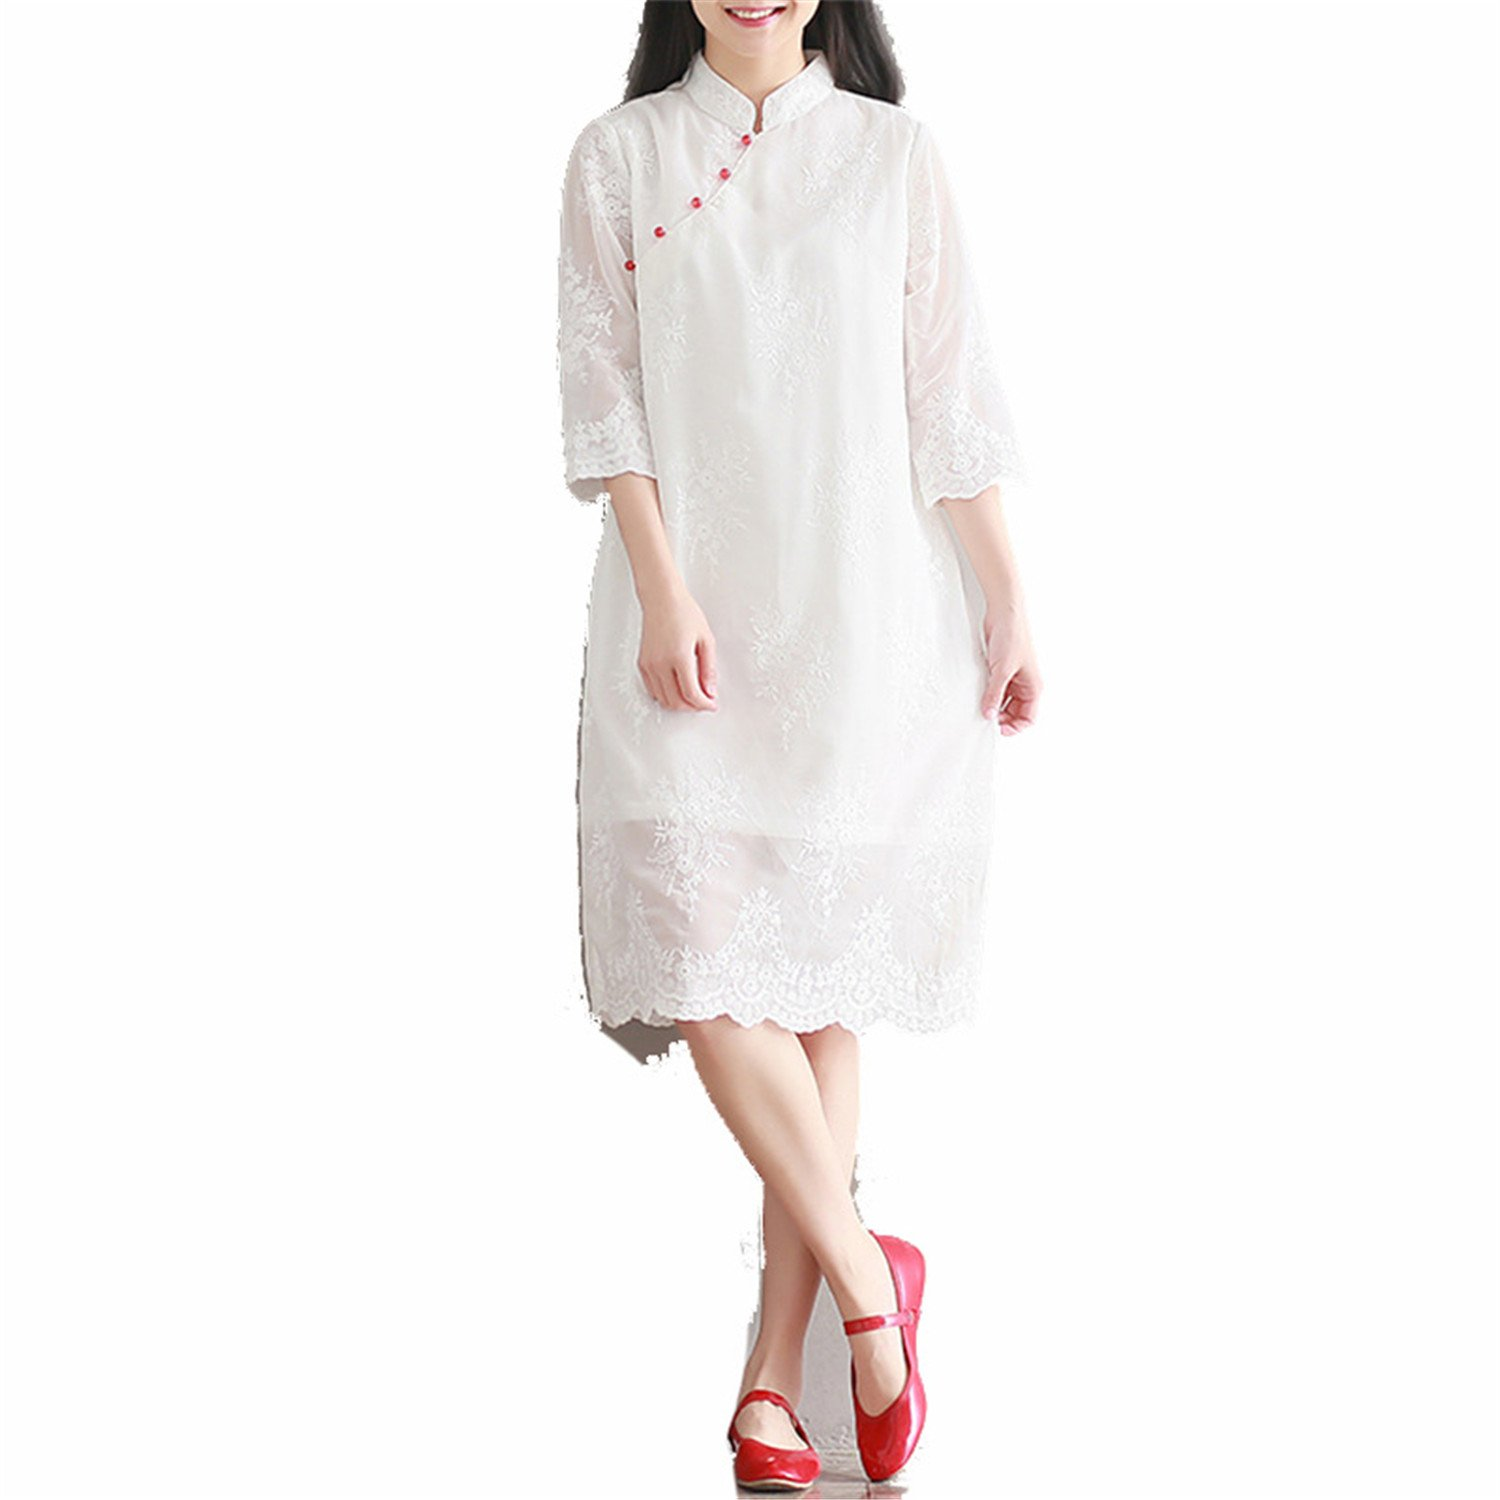 Coac3 Red Traditional Chinese Short Sleeve Cheongsam for Women Wedding Qipao Robe Dresses Party